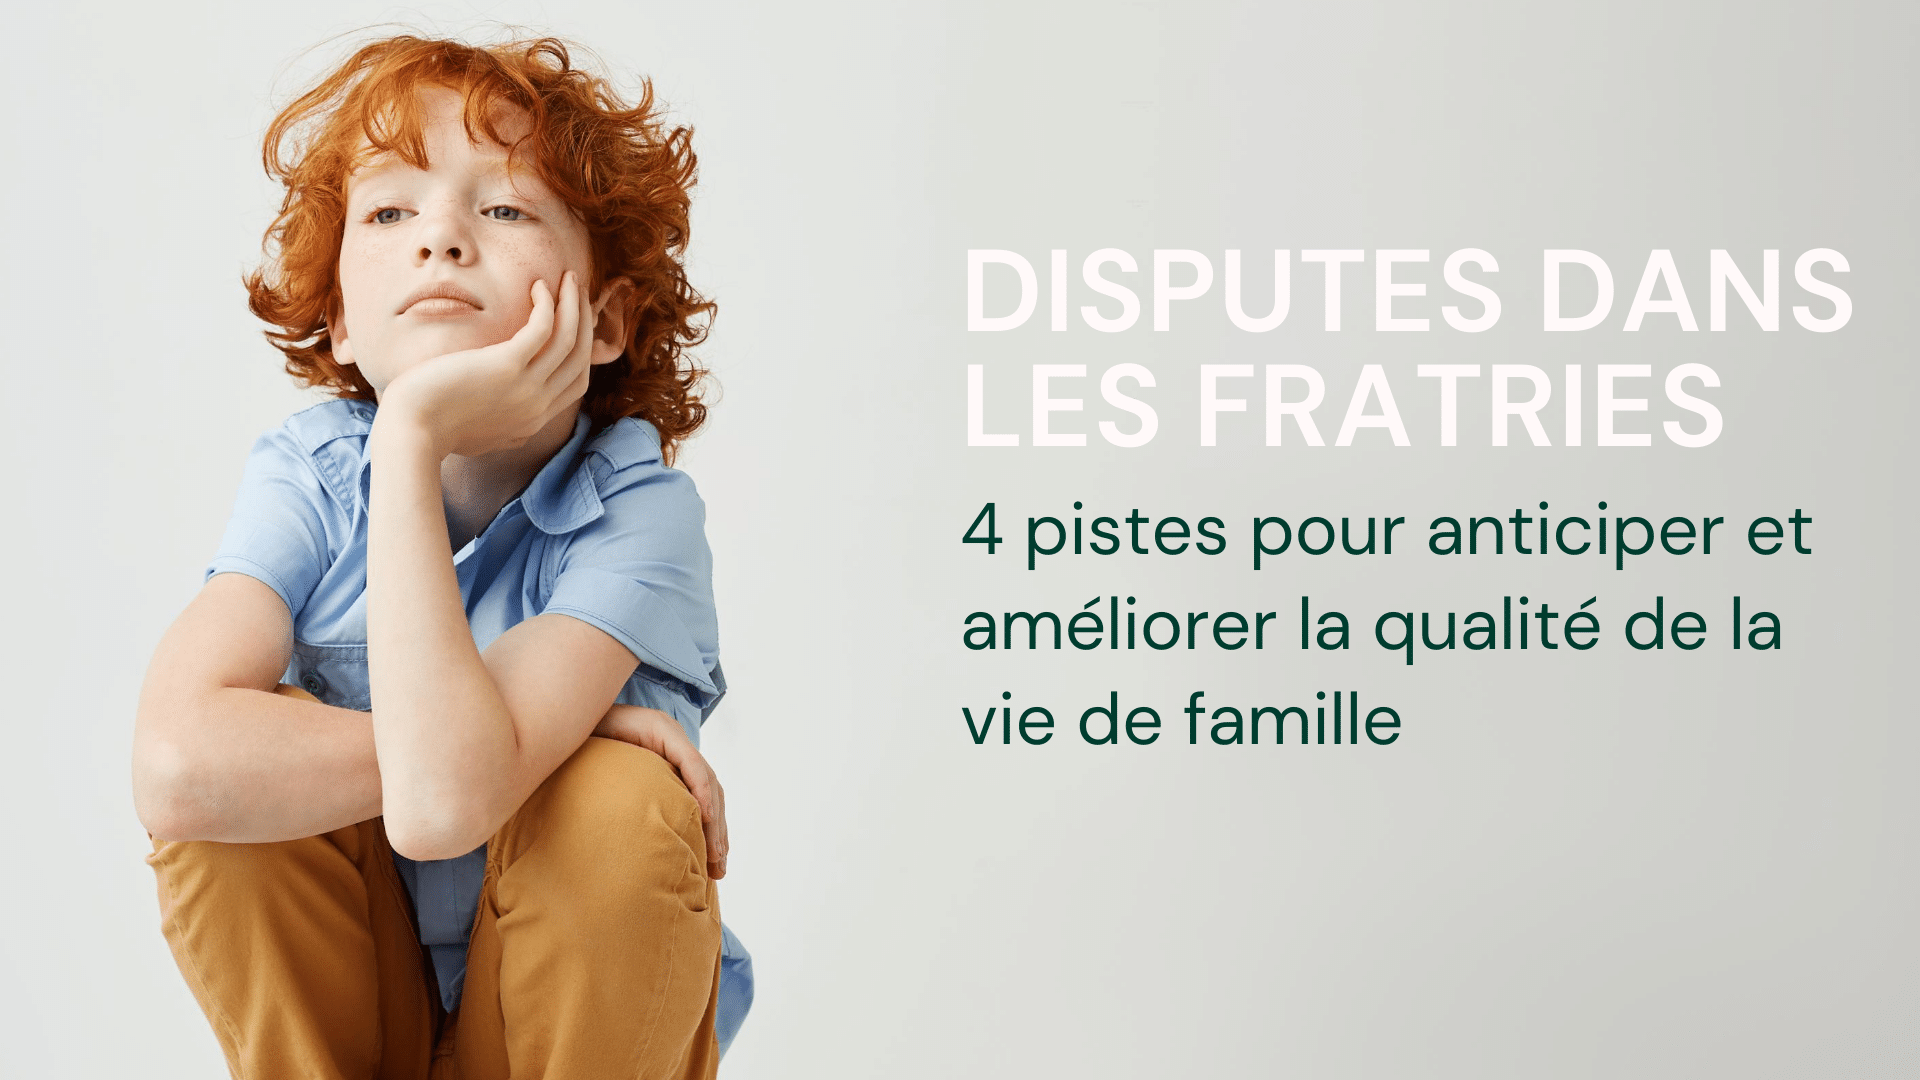 Disputes dans les fratries